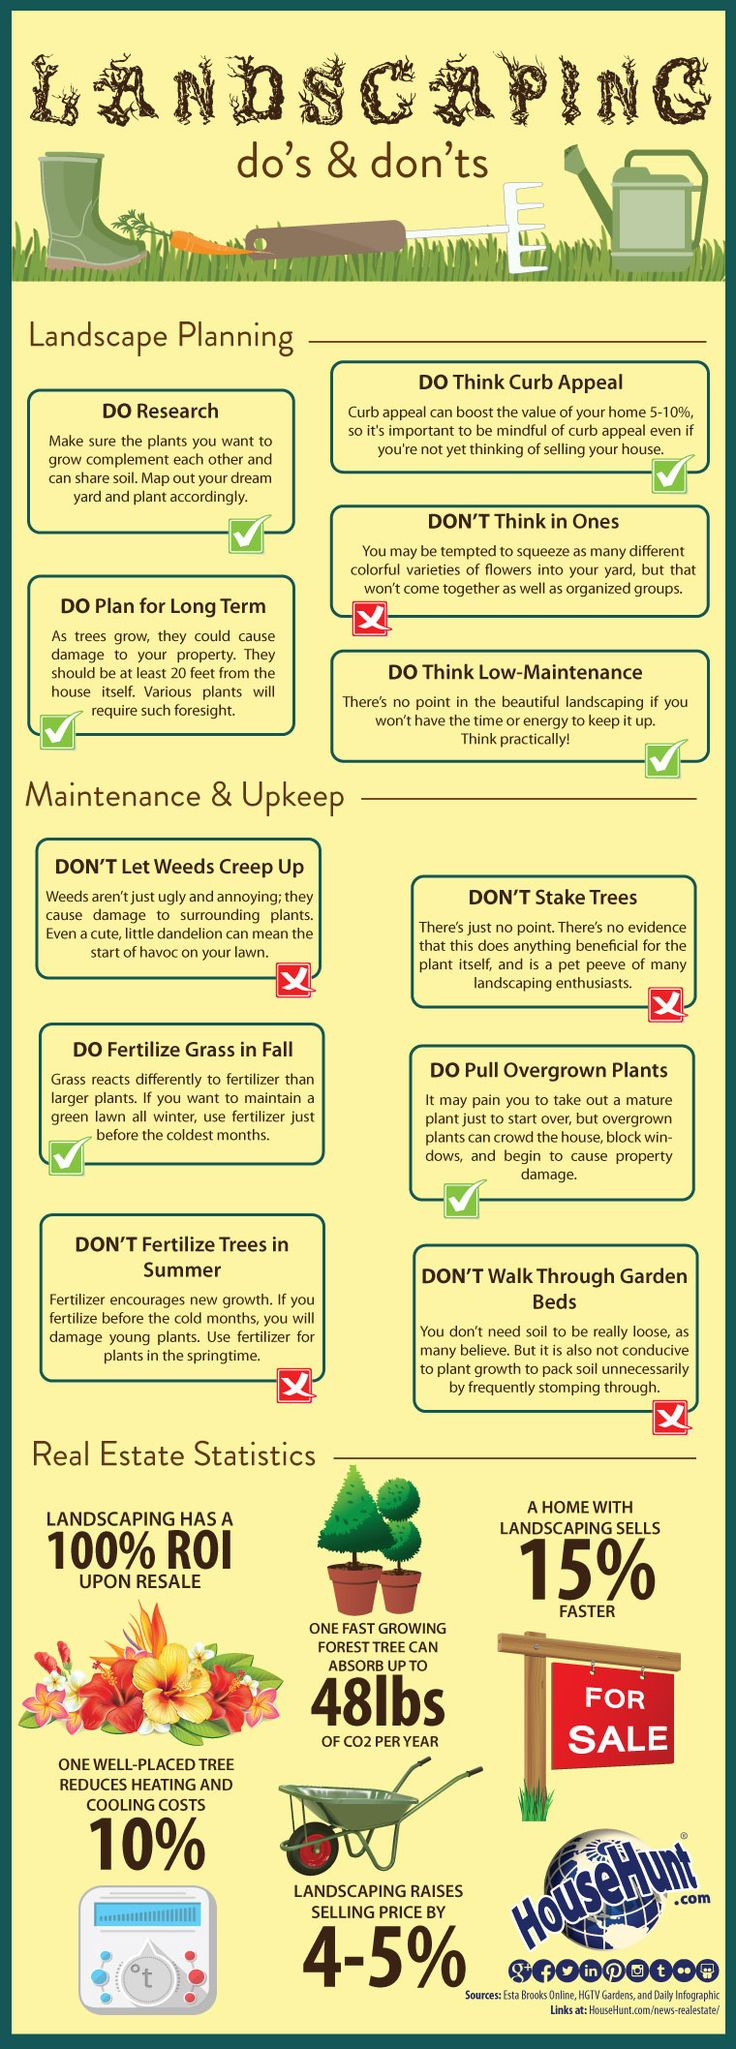 Landscaping Do's and Don'ts [Infographic] - Here are all the basic landscaping do's and don'ts to help you plan and maintain your home lawn and gardens. We even take a look at how landscaping plays a role in real estate.